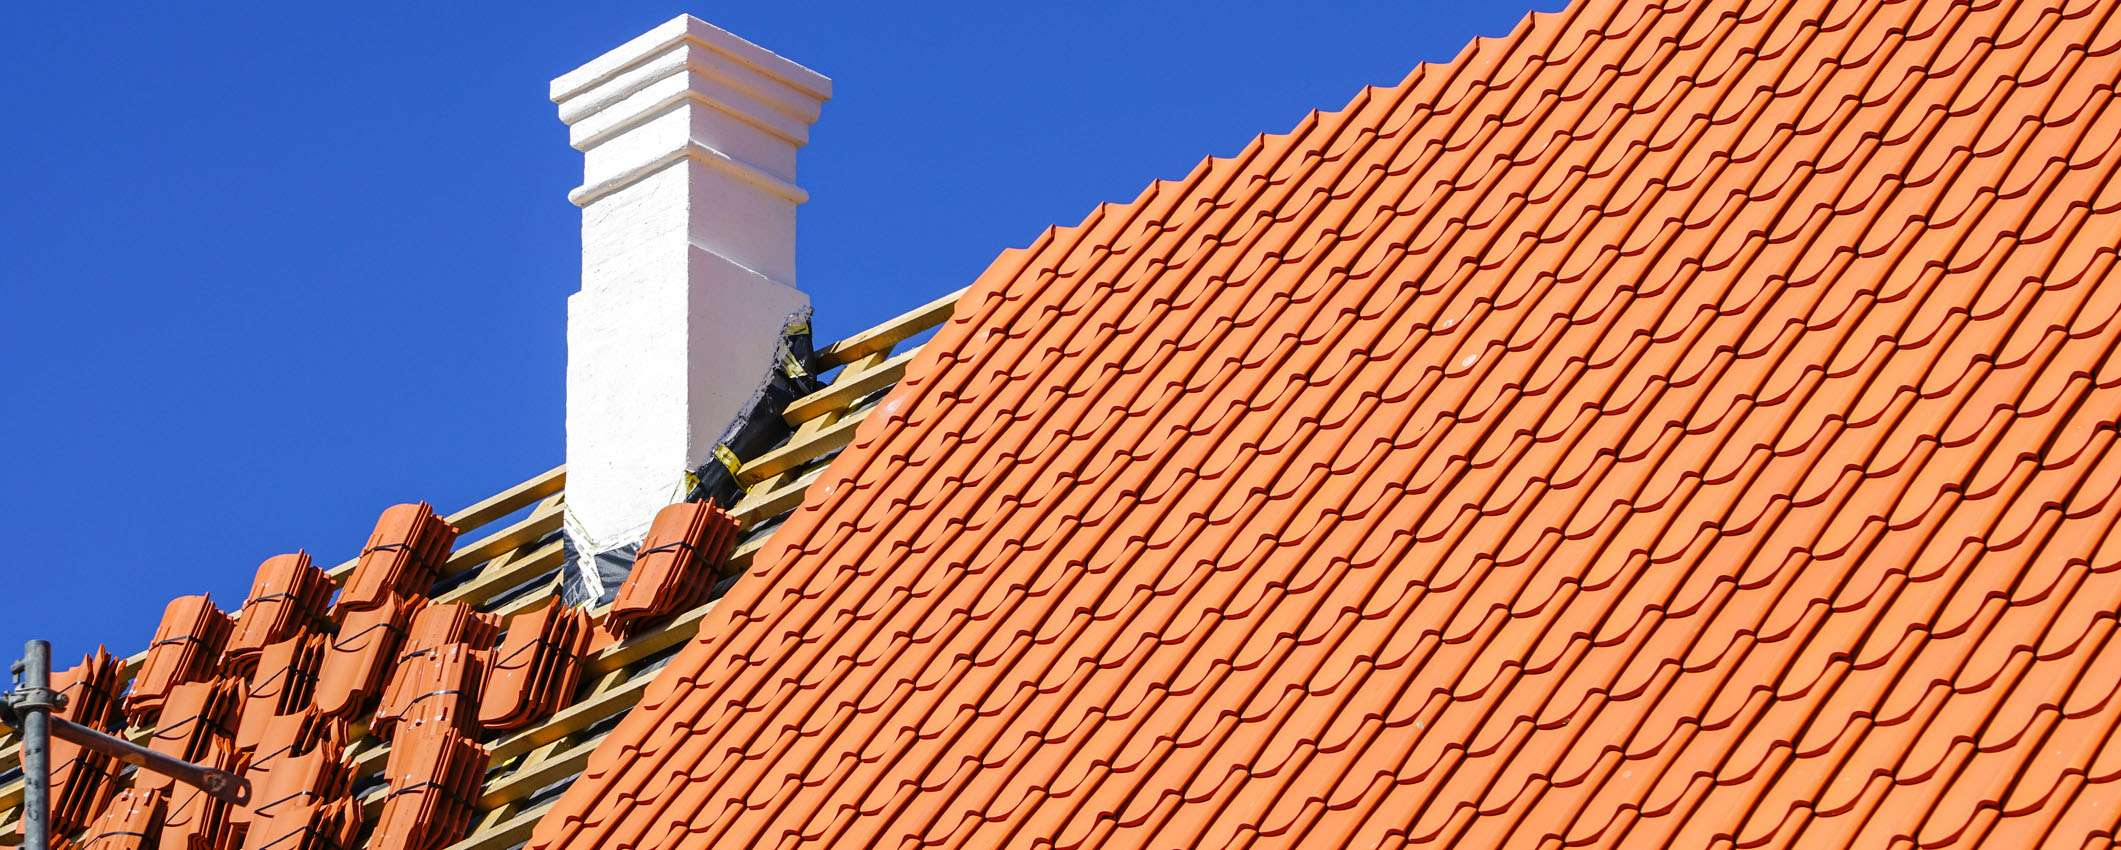 Incomplete Shingles Roof